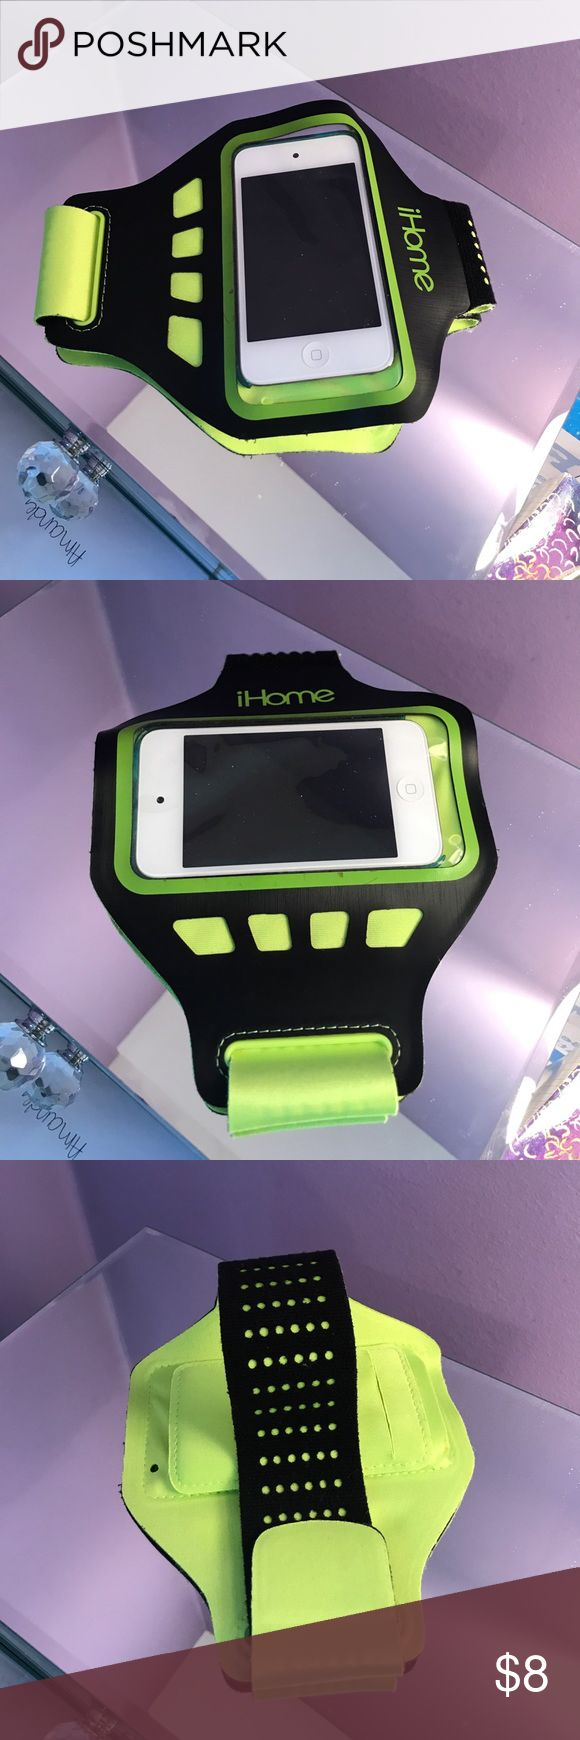 iHome Armband iHome armband. Great for running or using at the gym. Fits small iPhones and iPods. Will not fit any Apple plus size phones. This is for older models. Velcro's around arm. Device slides in and a hole for headphone jack is also included Accessories